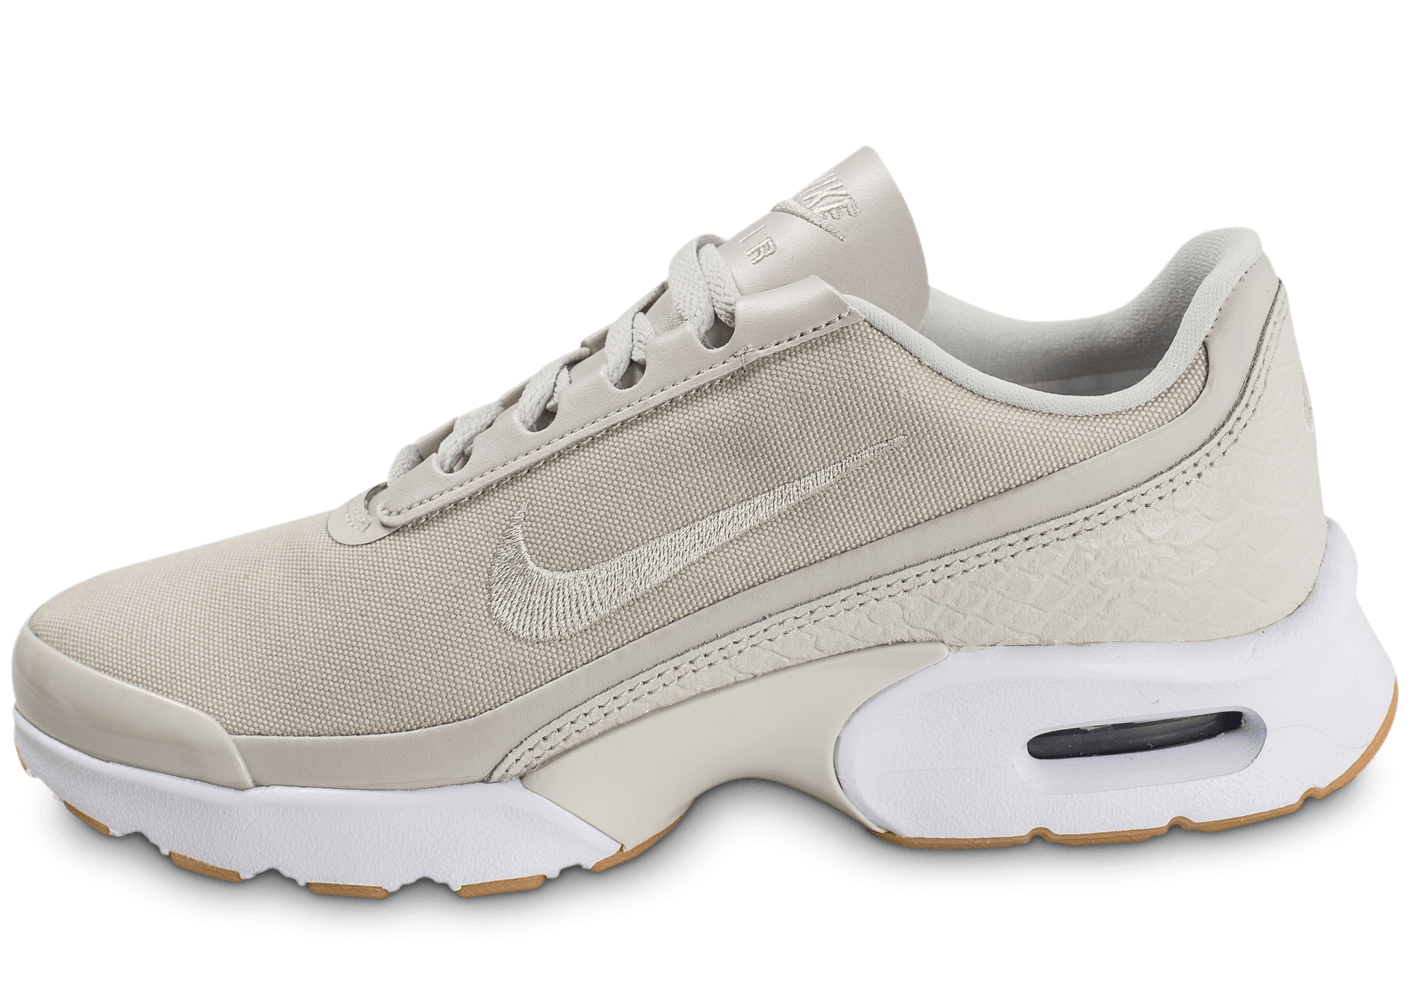 timeless design 0f394 1d266 Nike Air Max Jewell SE beige - Chaussures Baskets femme - Chausport